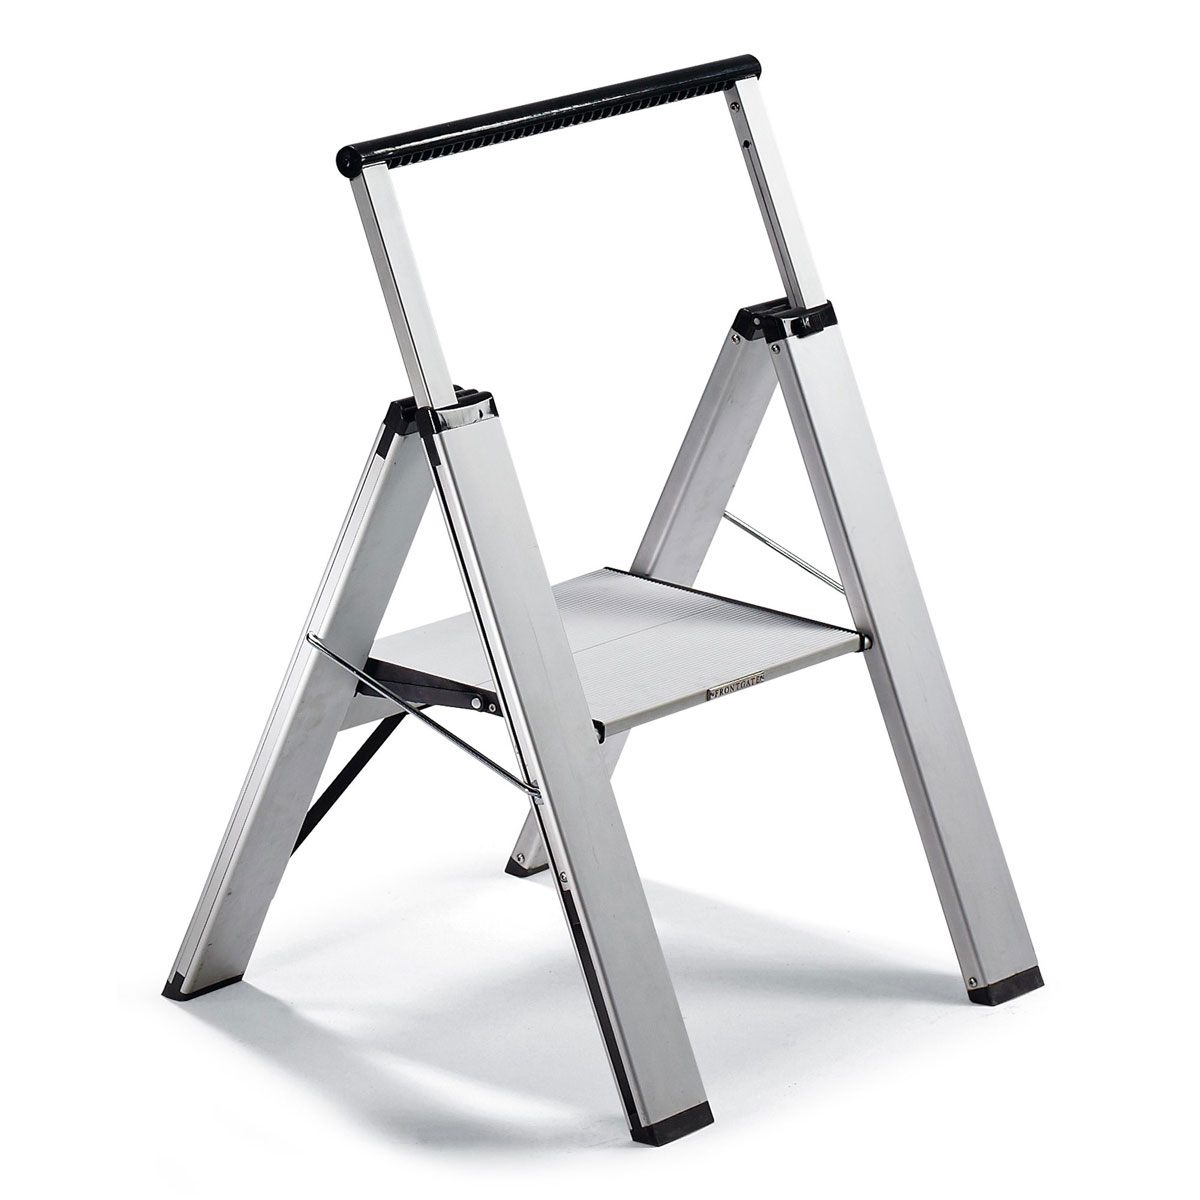 Groovy Heavy Duty Slimline Step Ladder Inzonedesignstudio Interior Chair Design Inzonedesignstudiocom